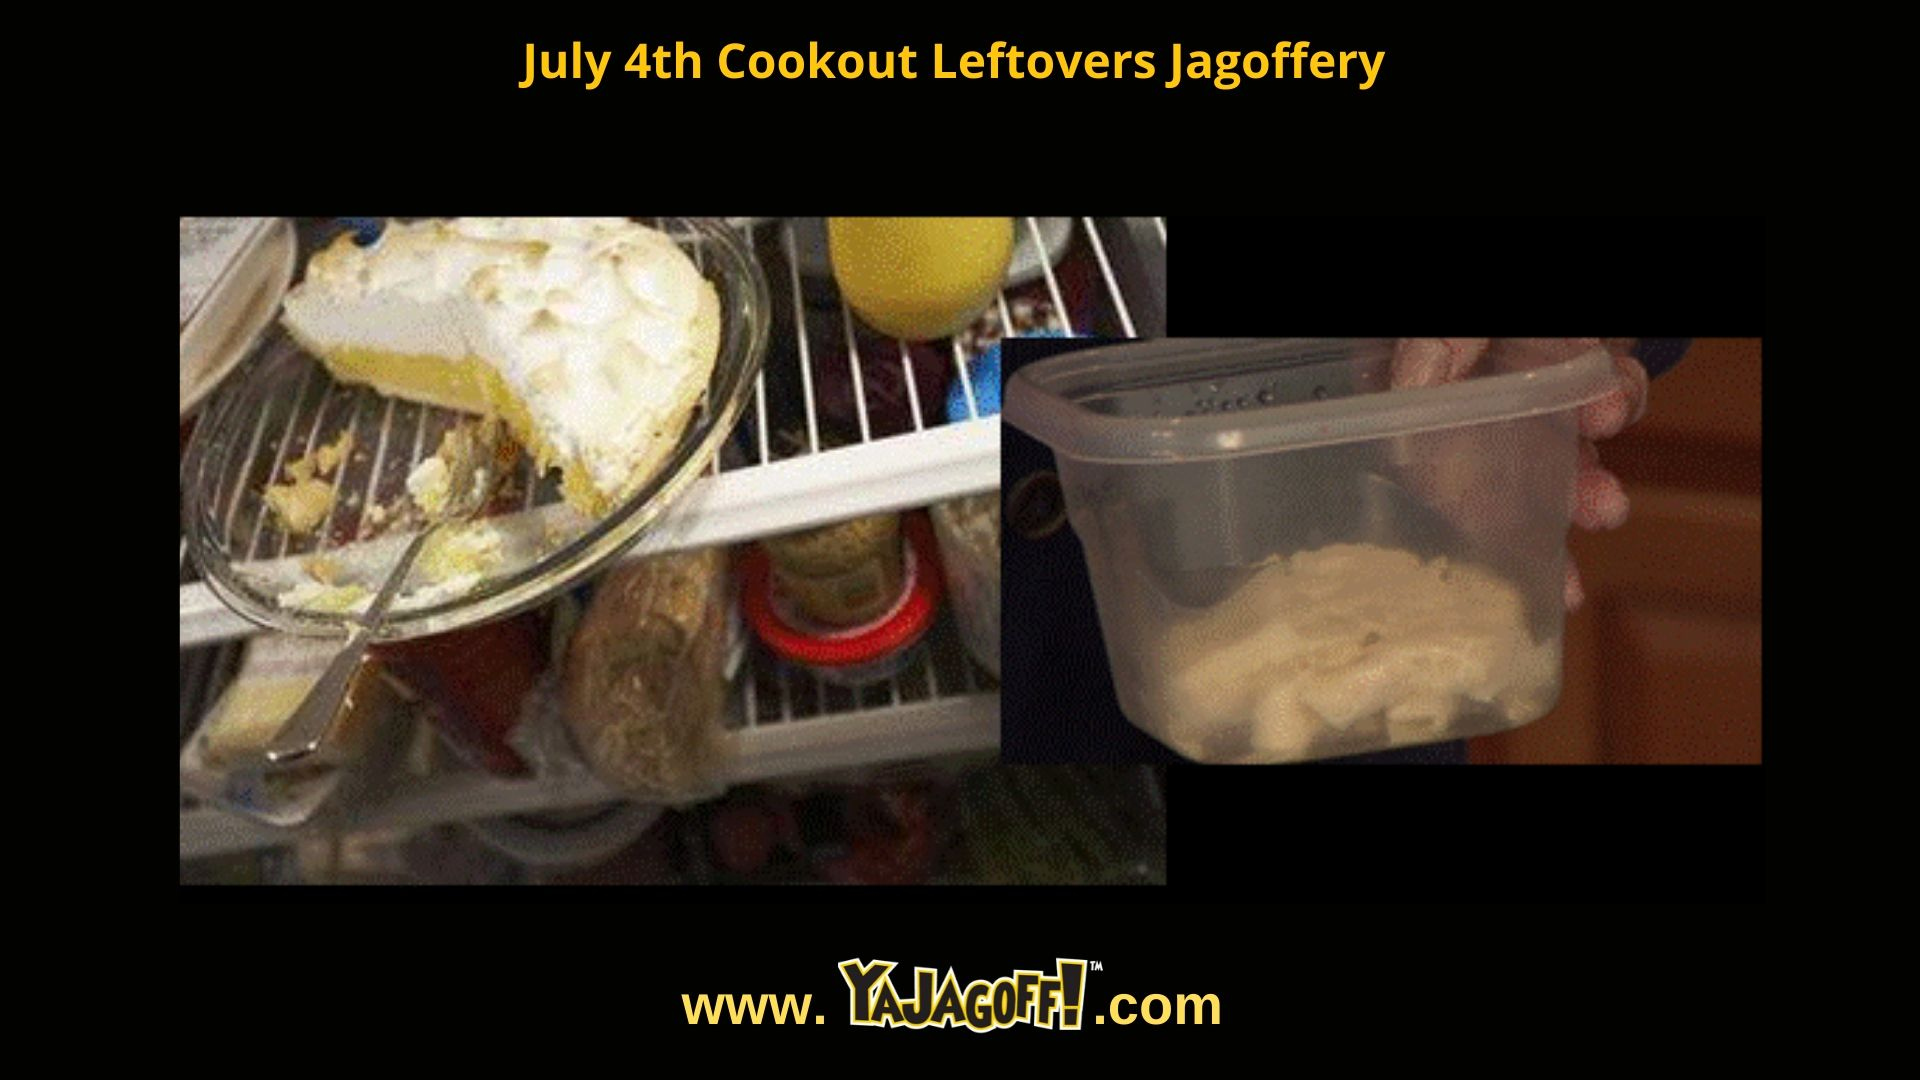 yajagoff.com and leftovers